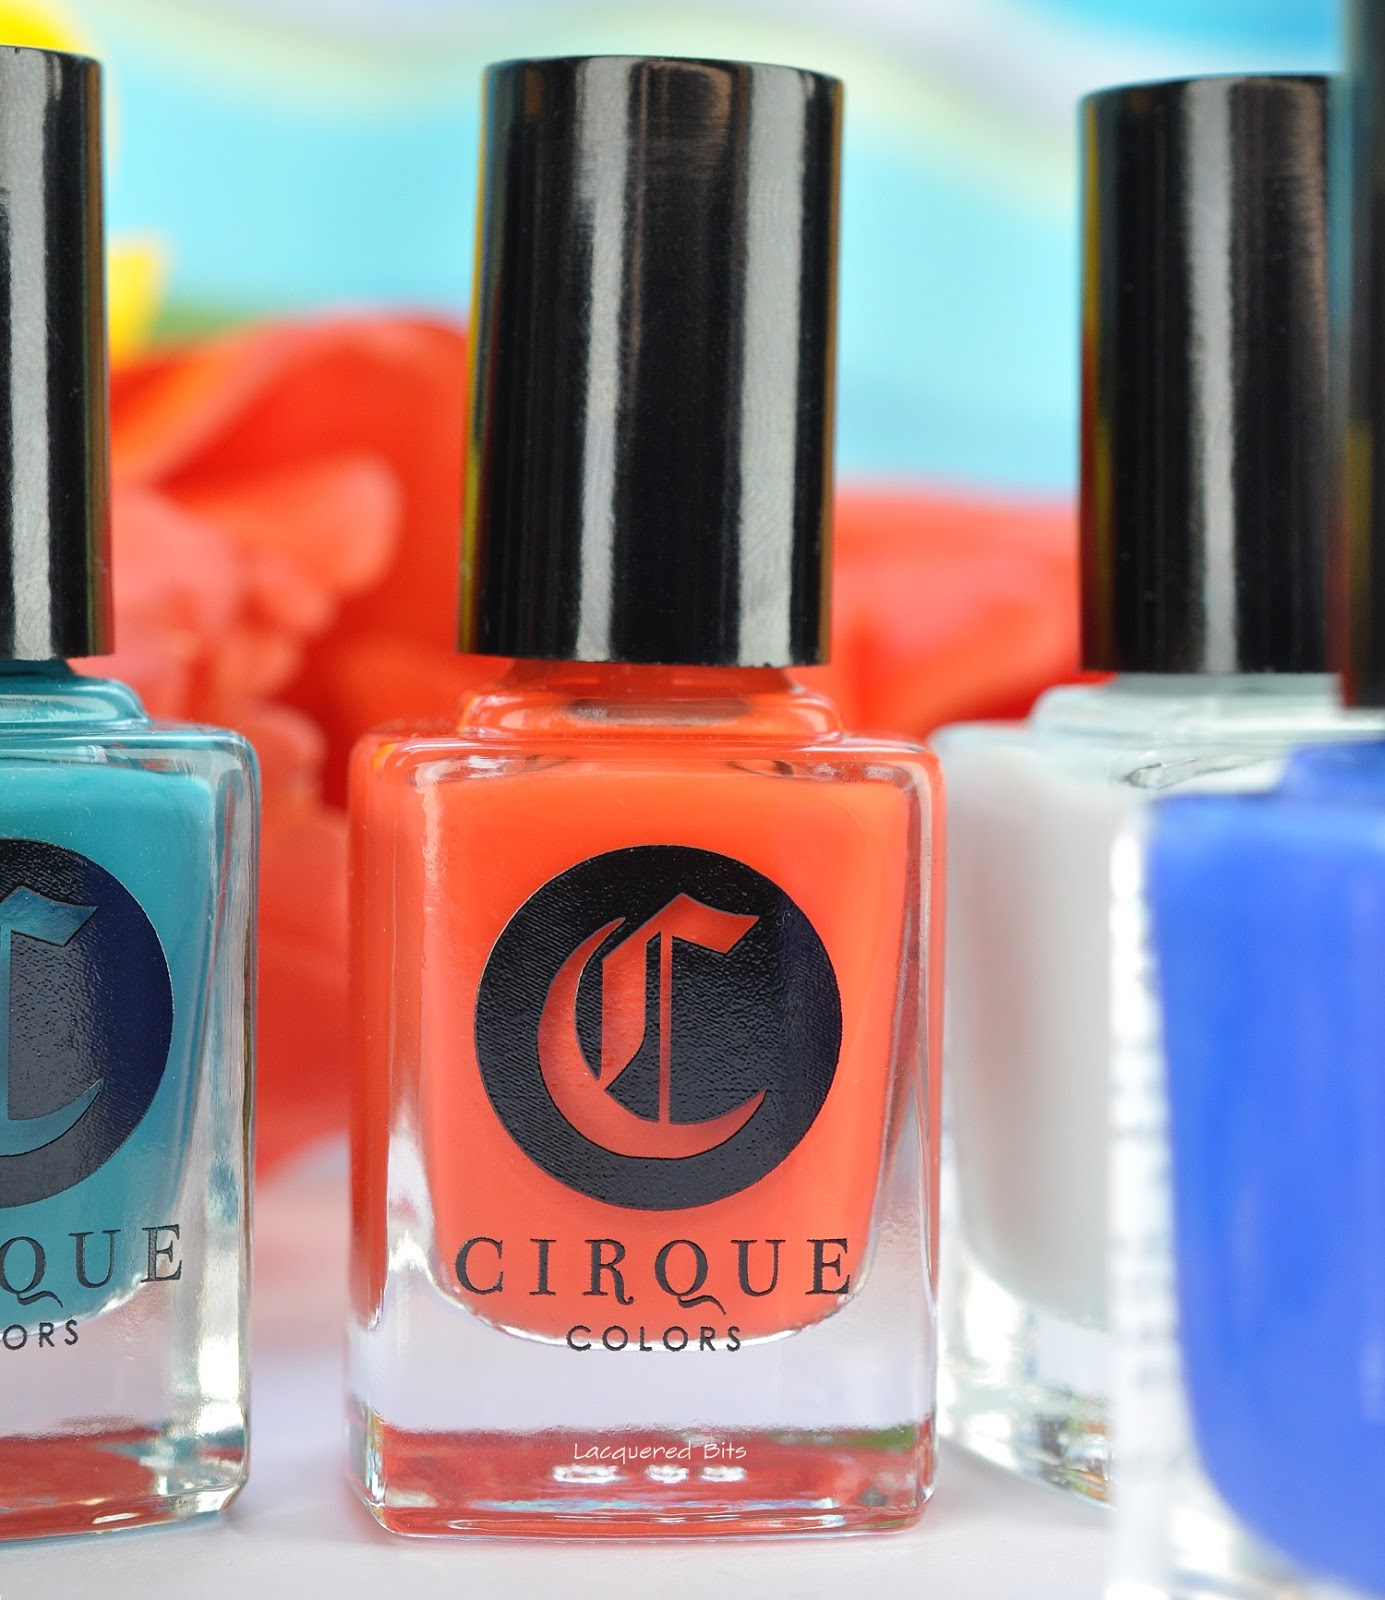 Fire Island - Cirque Colors Spring/Summer 2016